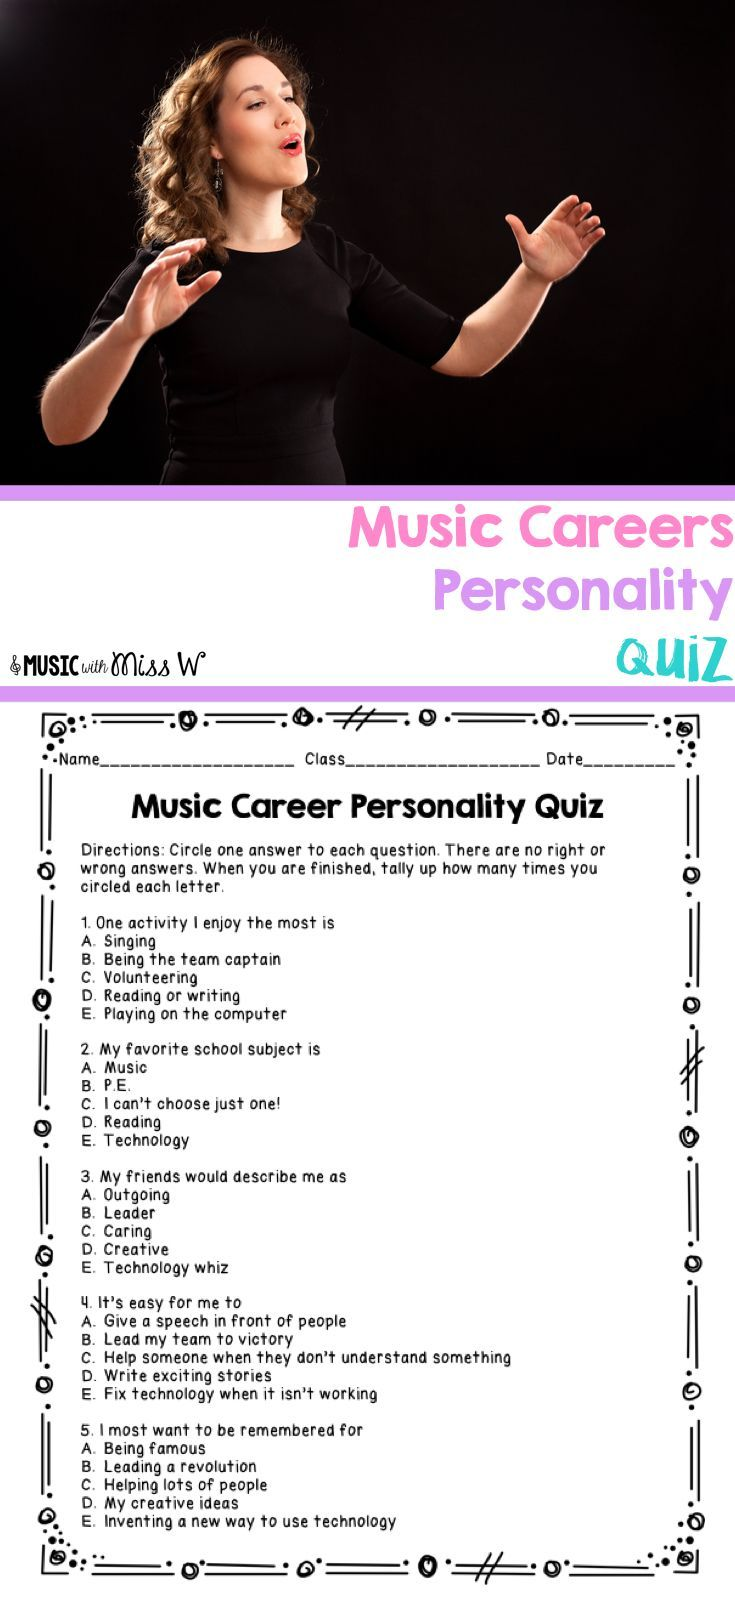 Enjoyable 25 Best Career Quiz Ideas On Pinterest Self Awareness Short Hairstyles Gunalazisus